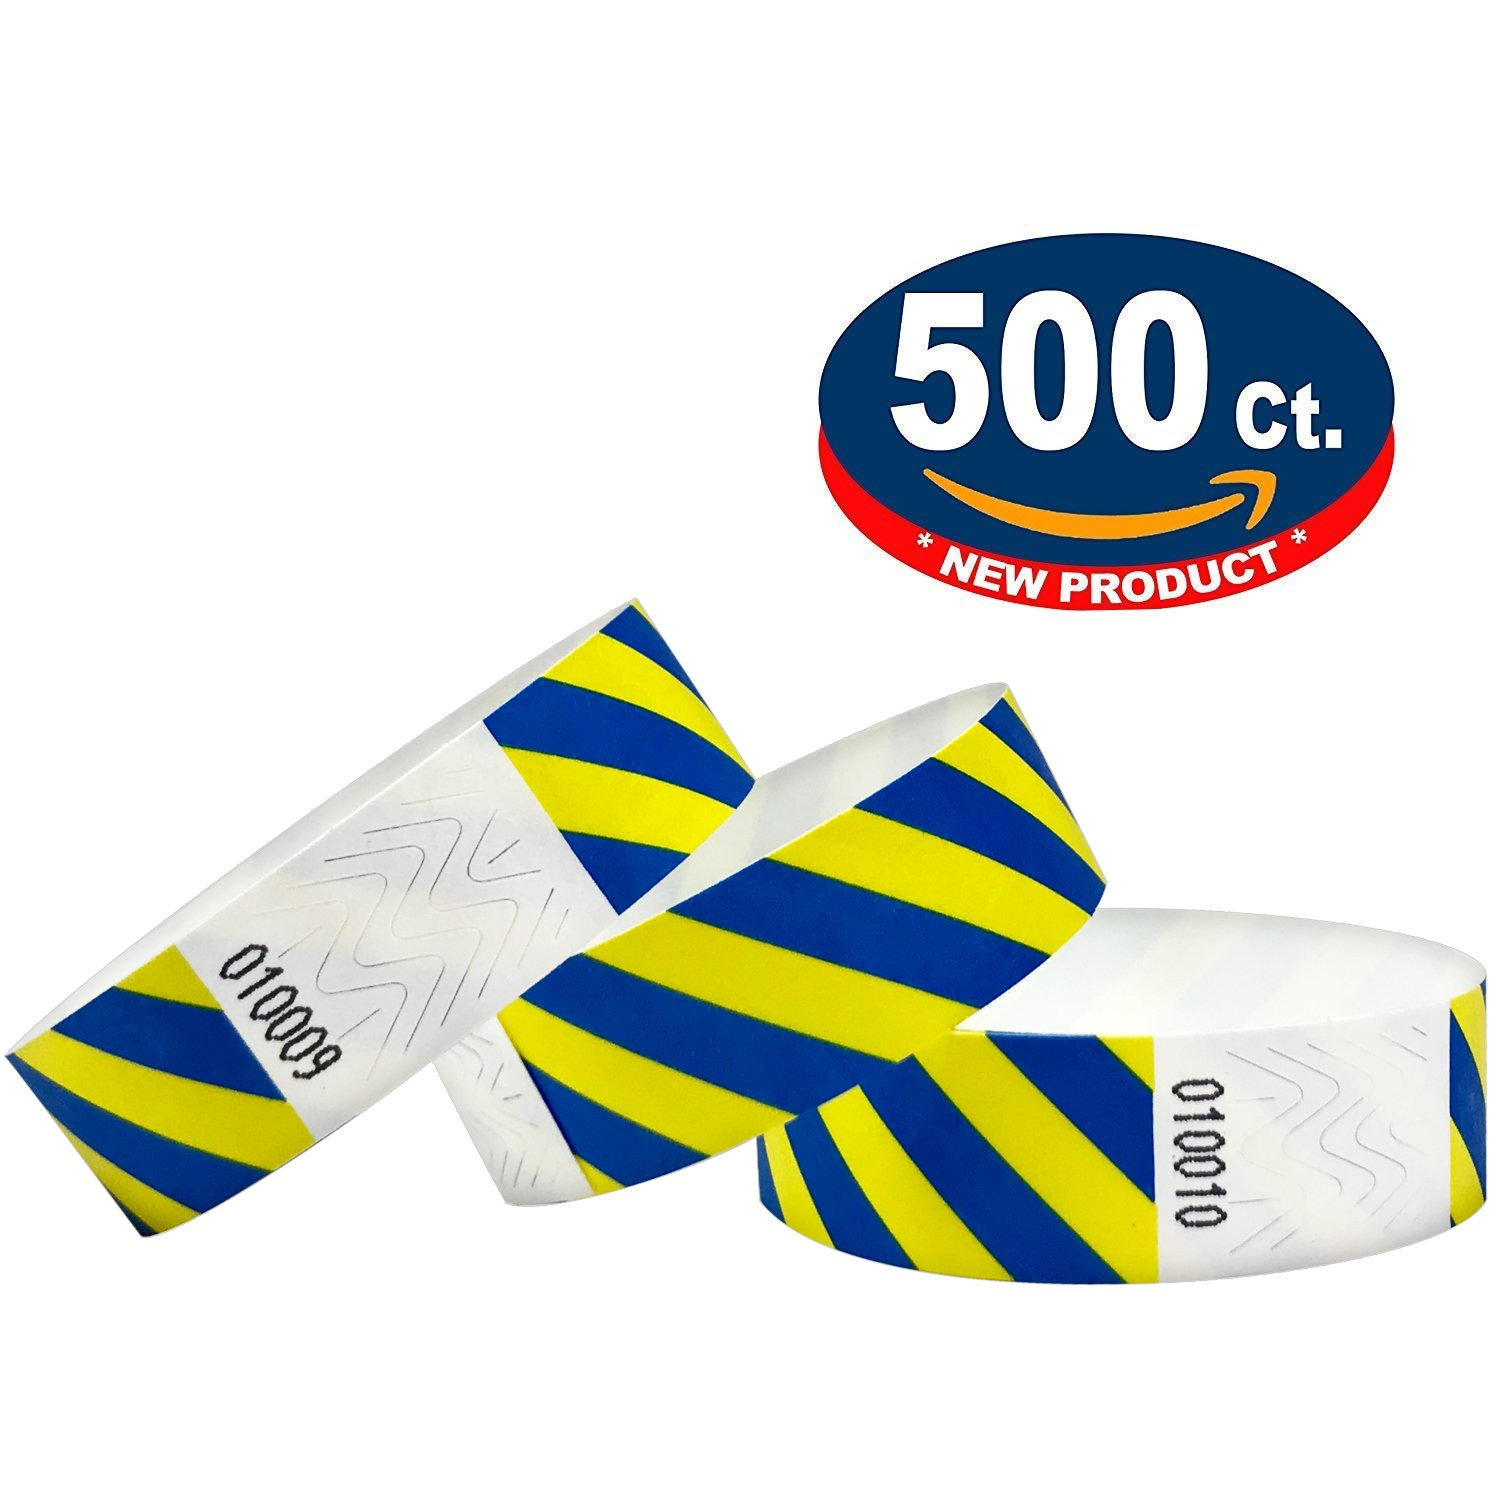 Tyvek Wristbands - Striped - 500 Pack - Neon Blue + Yellow - 3/4'' Tyvek Wristbands for Events …